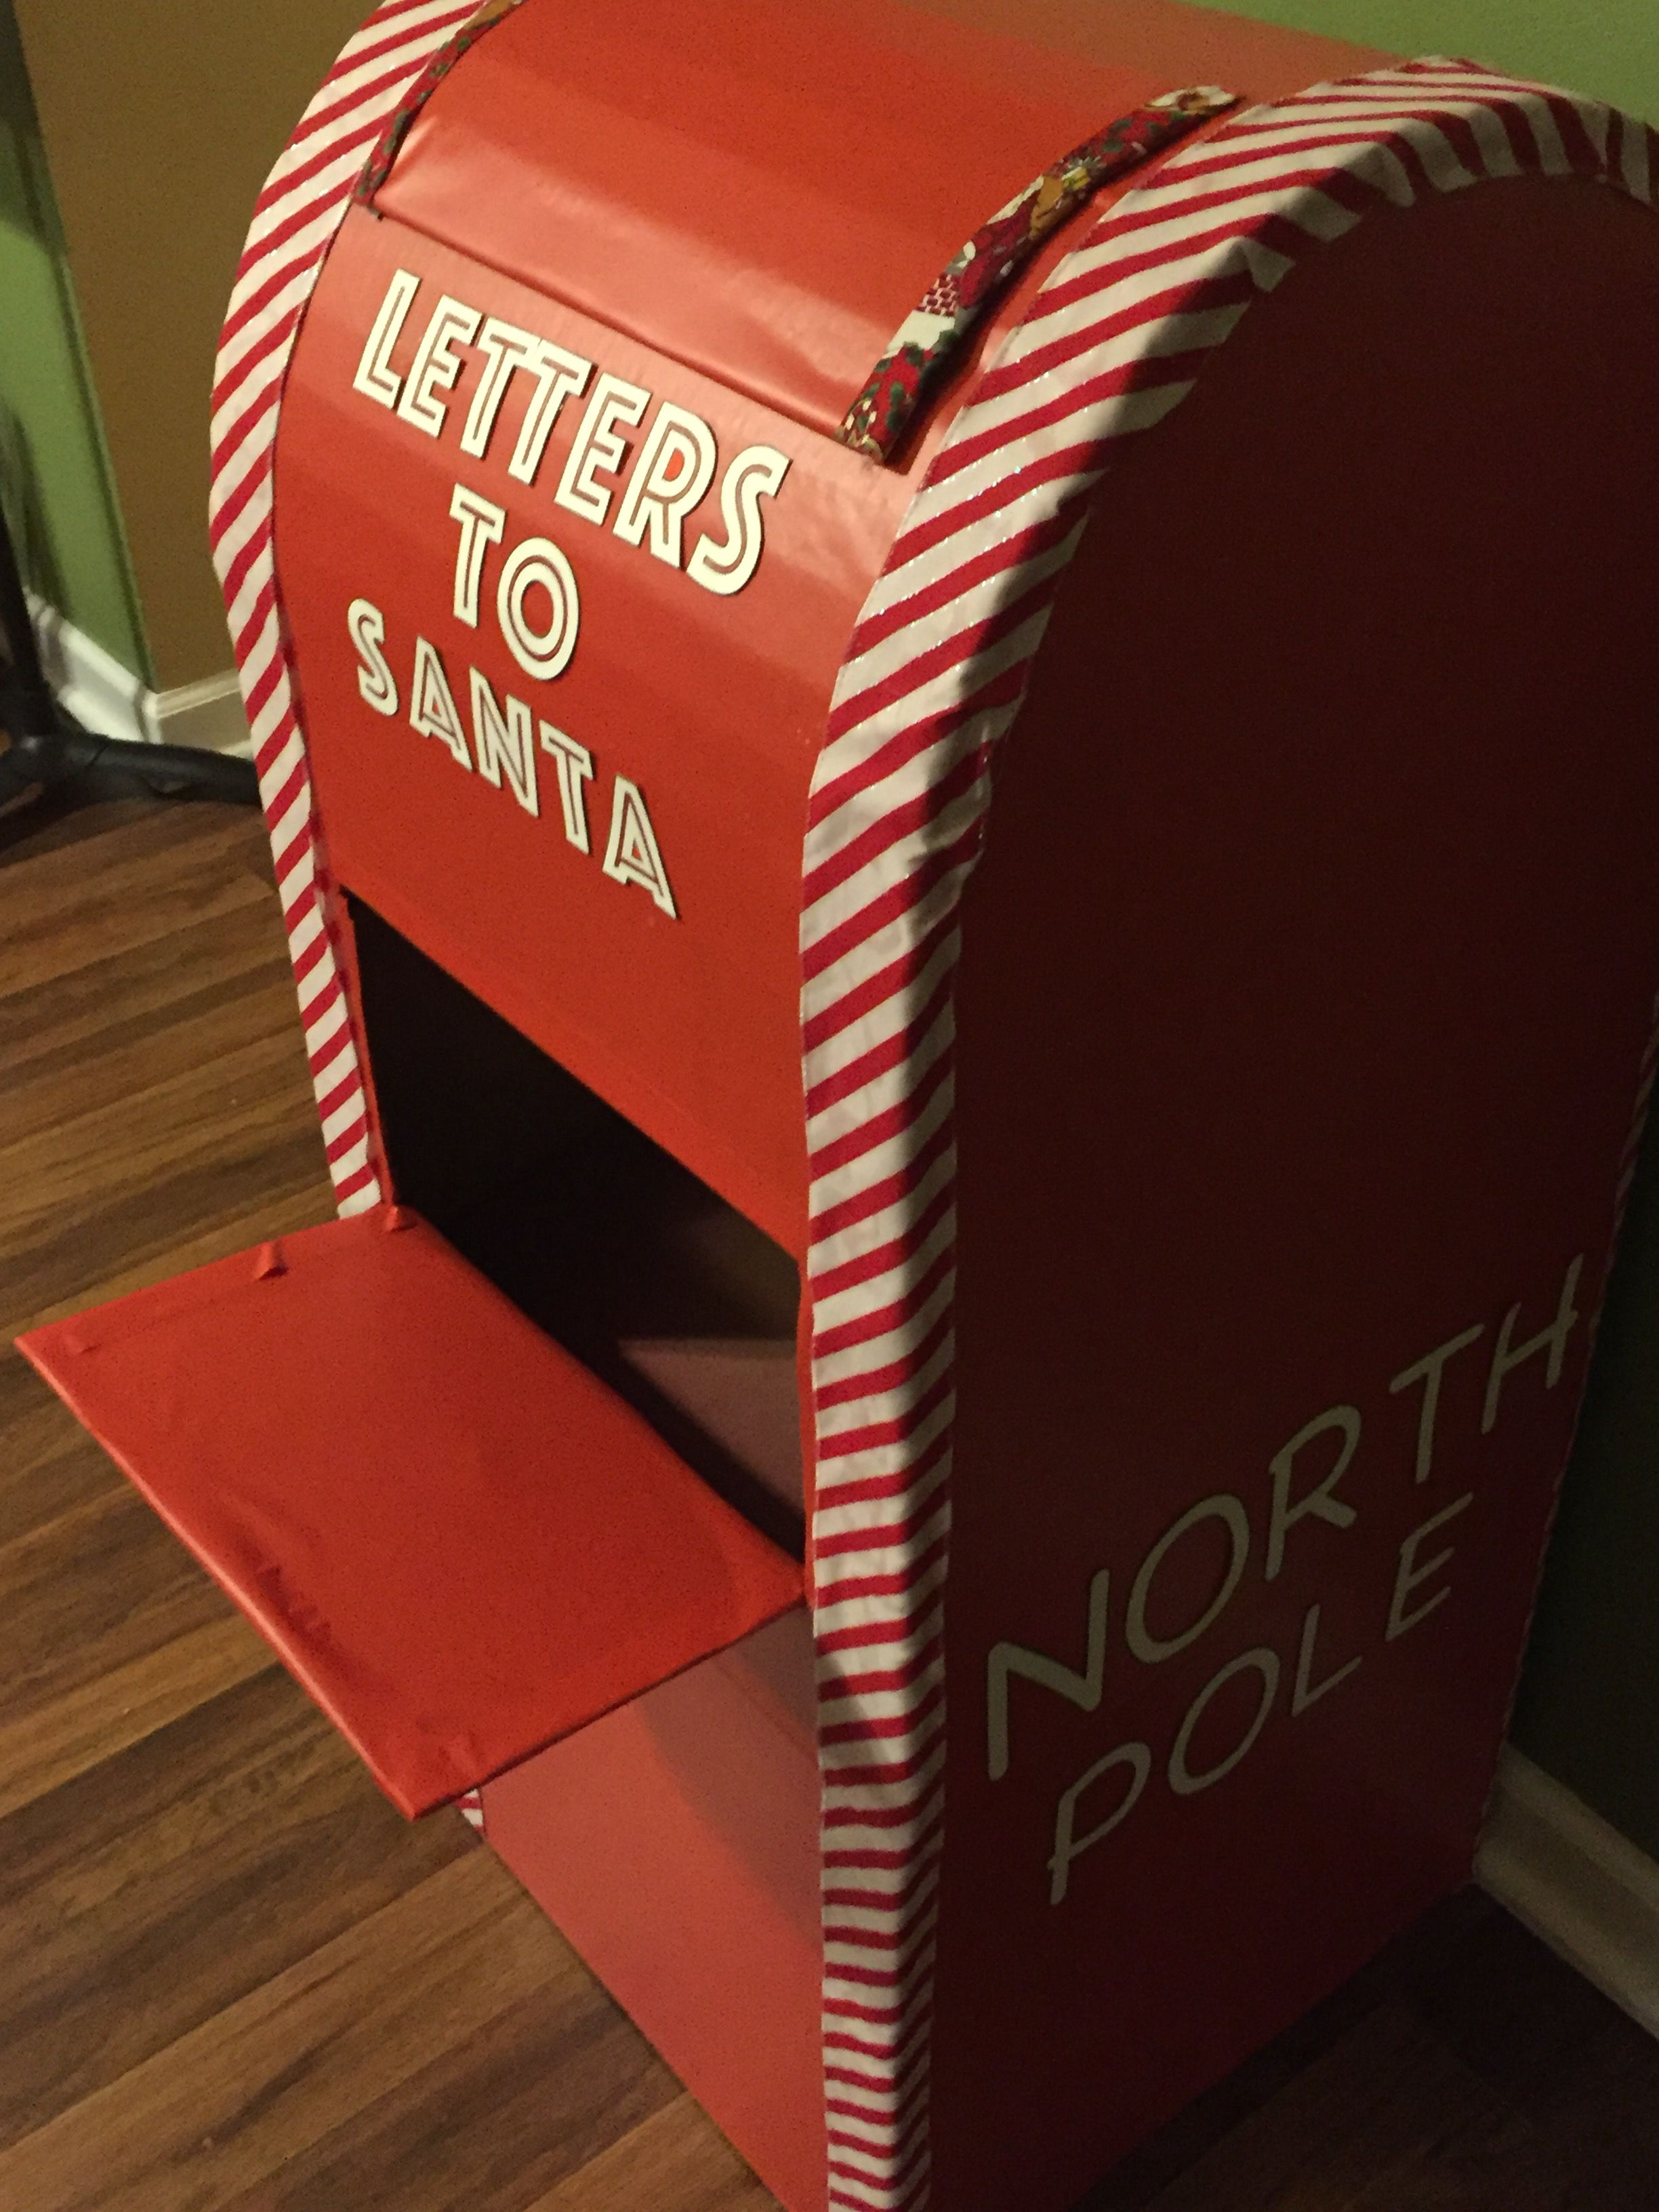 Cardboard Letters To Santa Mailbox Cute Christmas Decorations